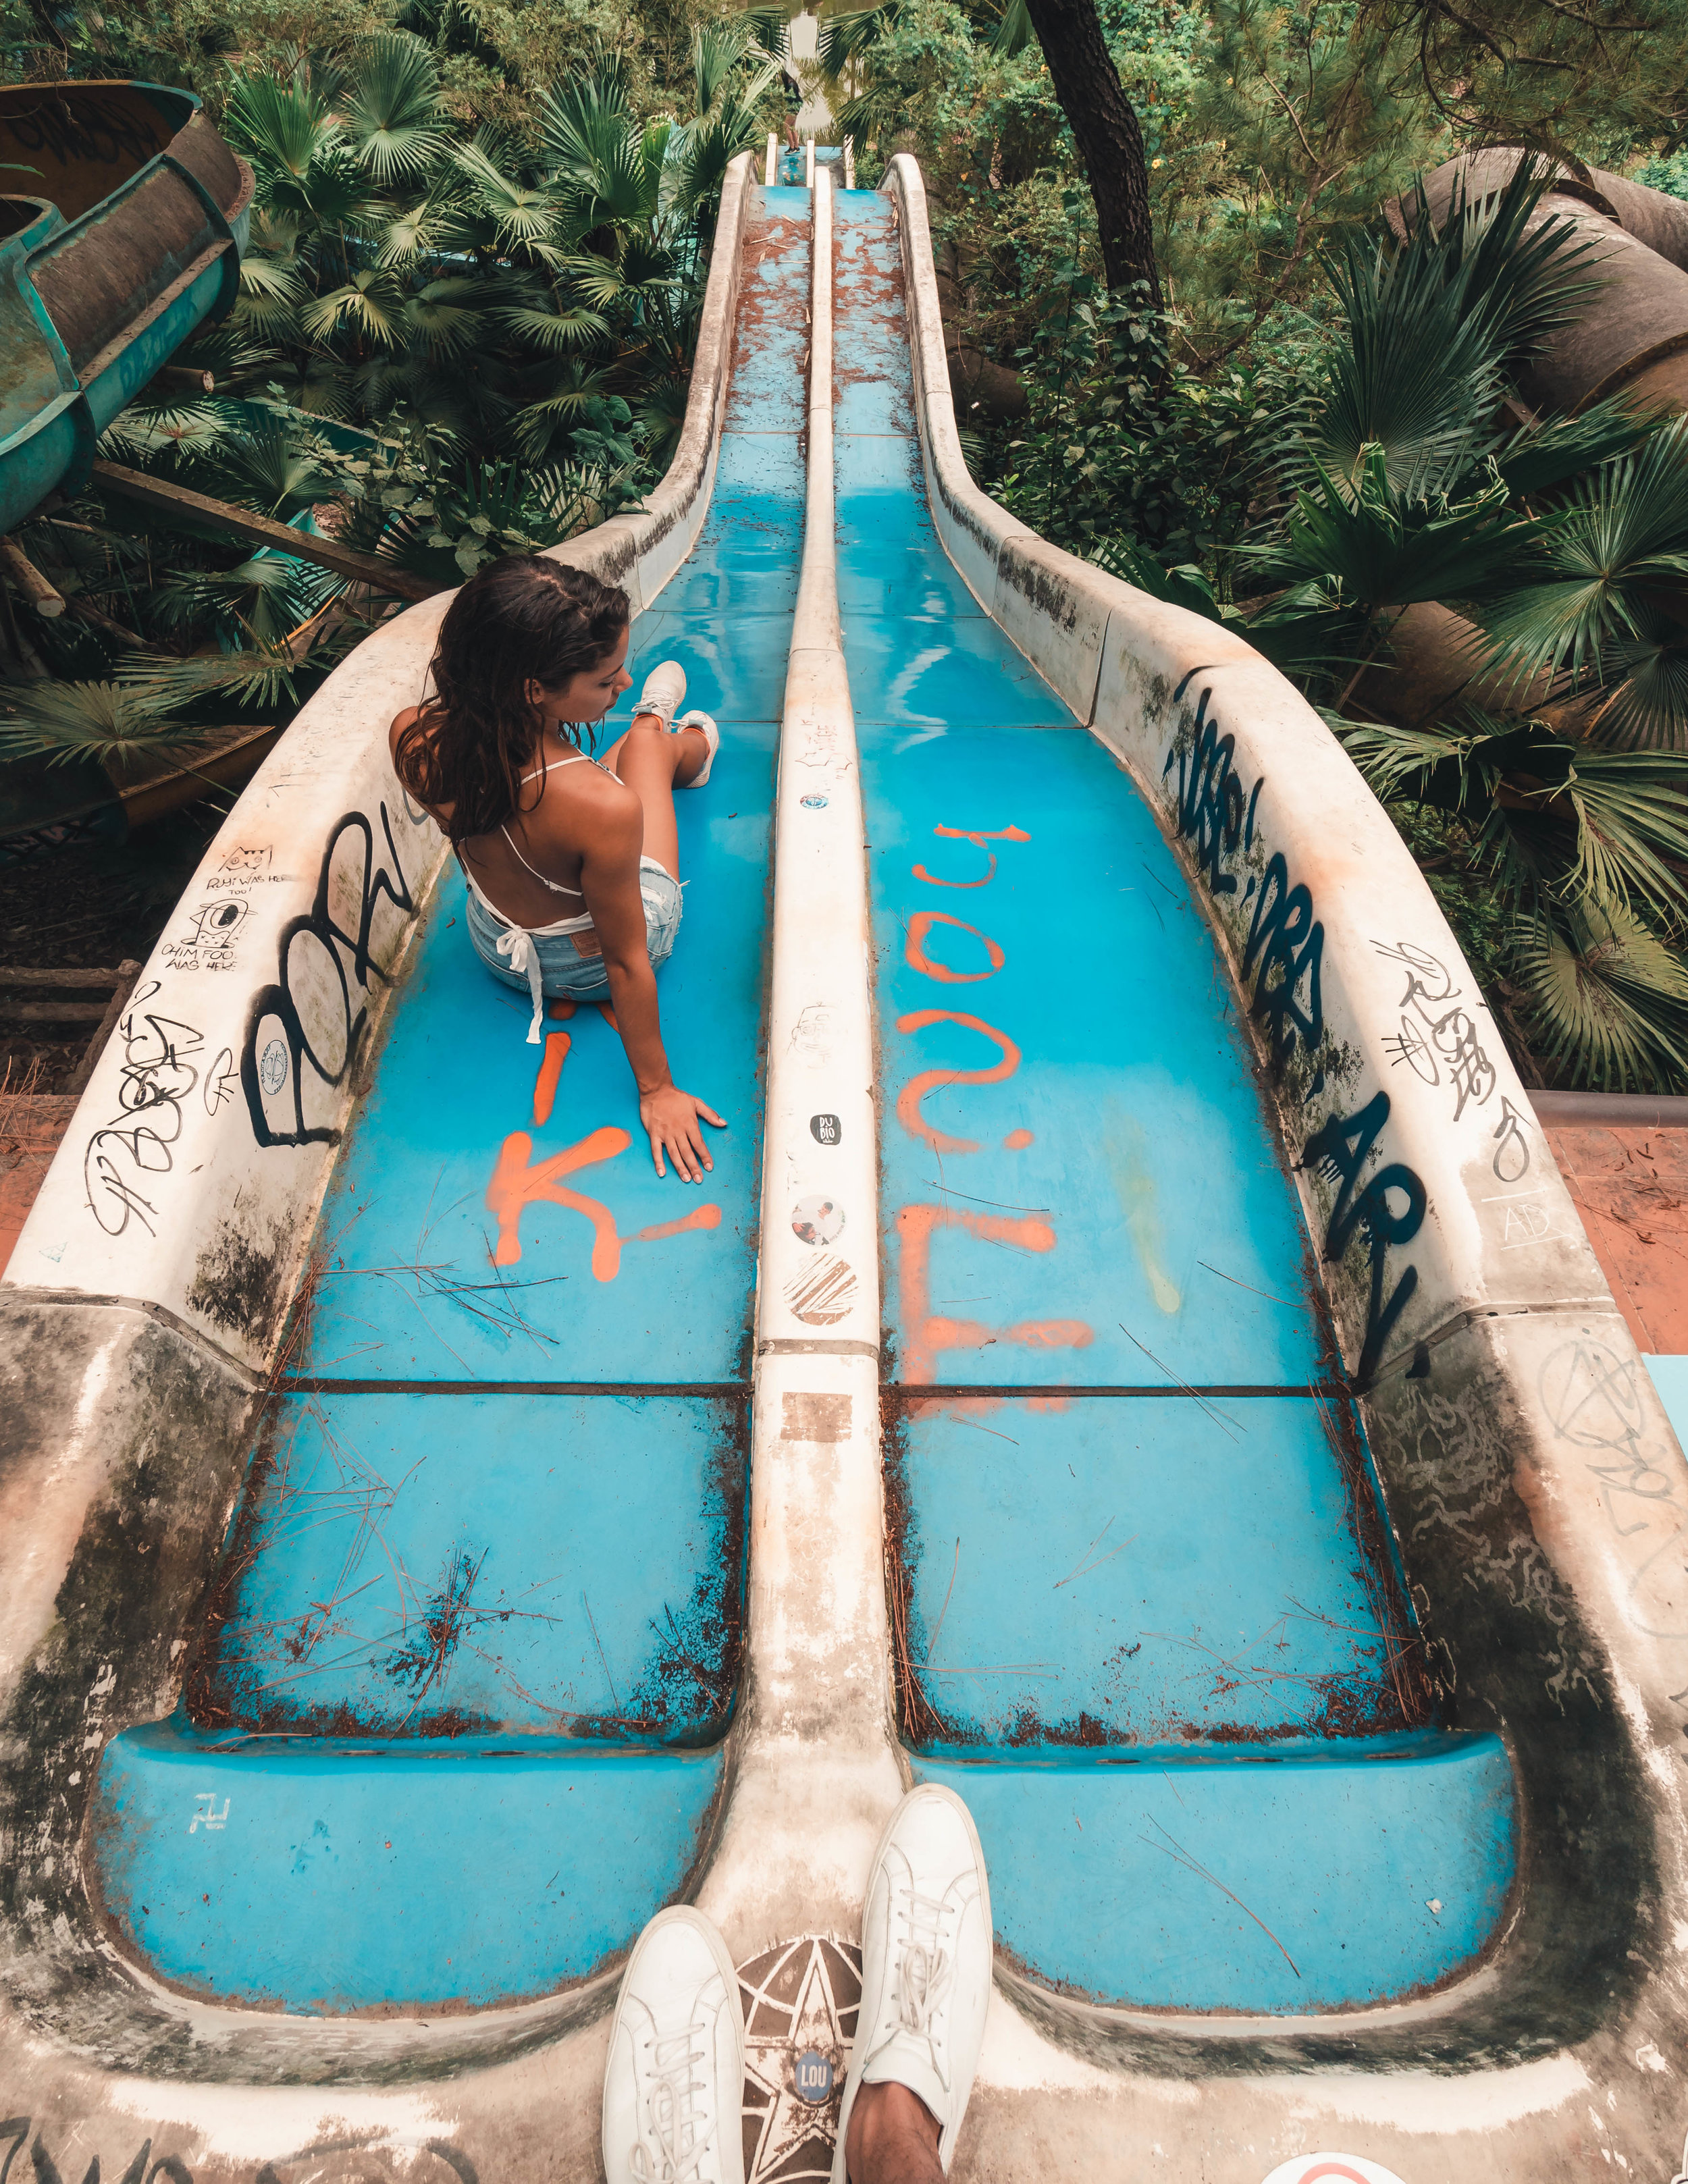 hue_waterpark_slide_2.jpg